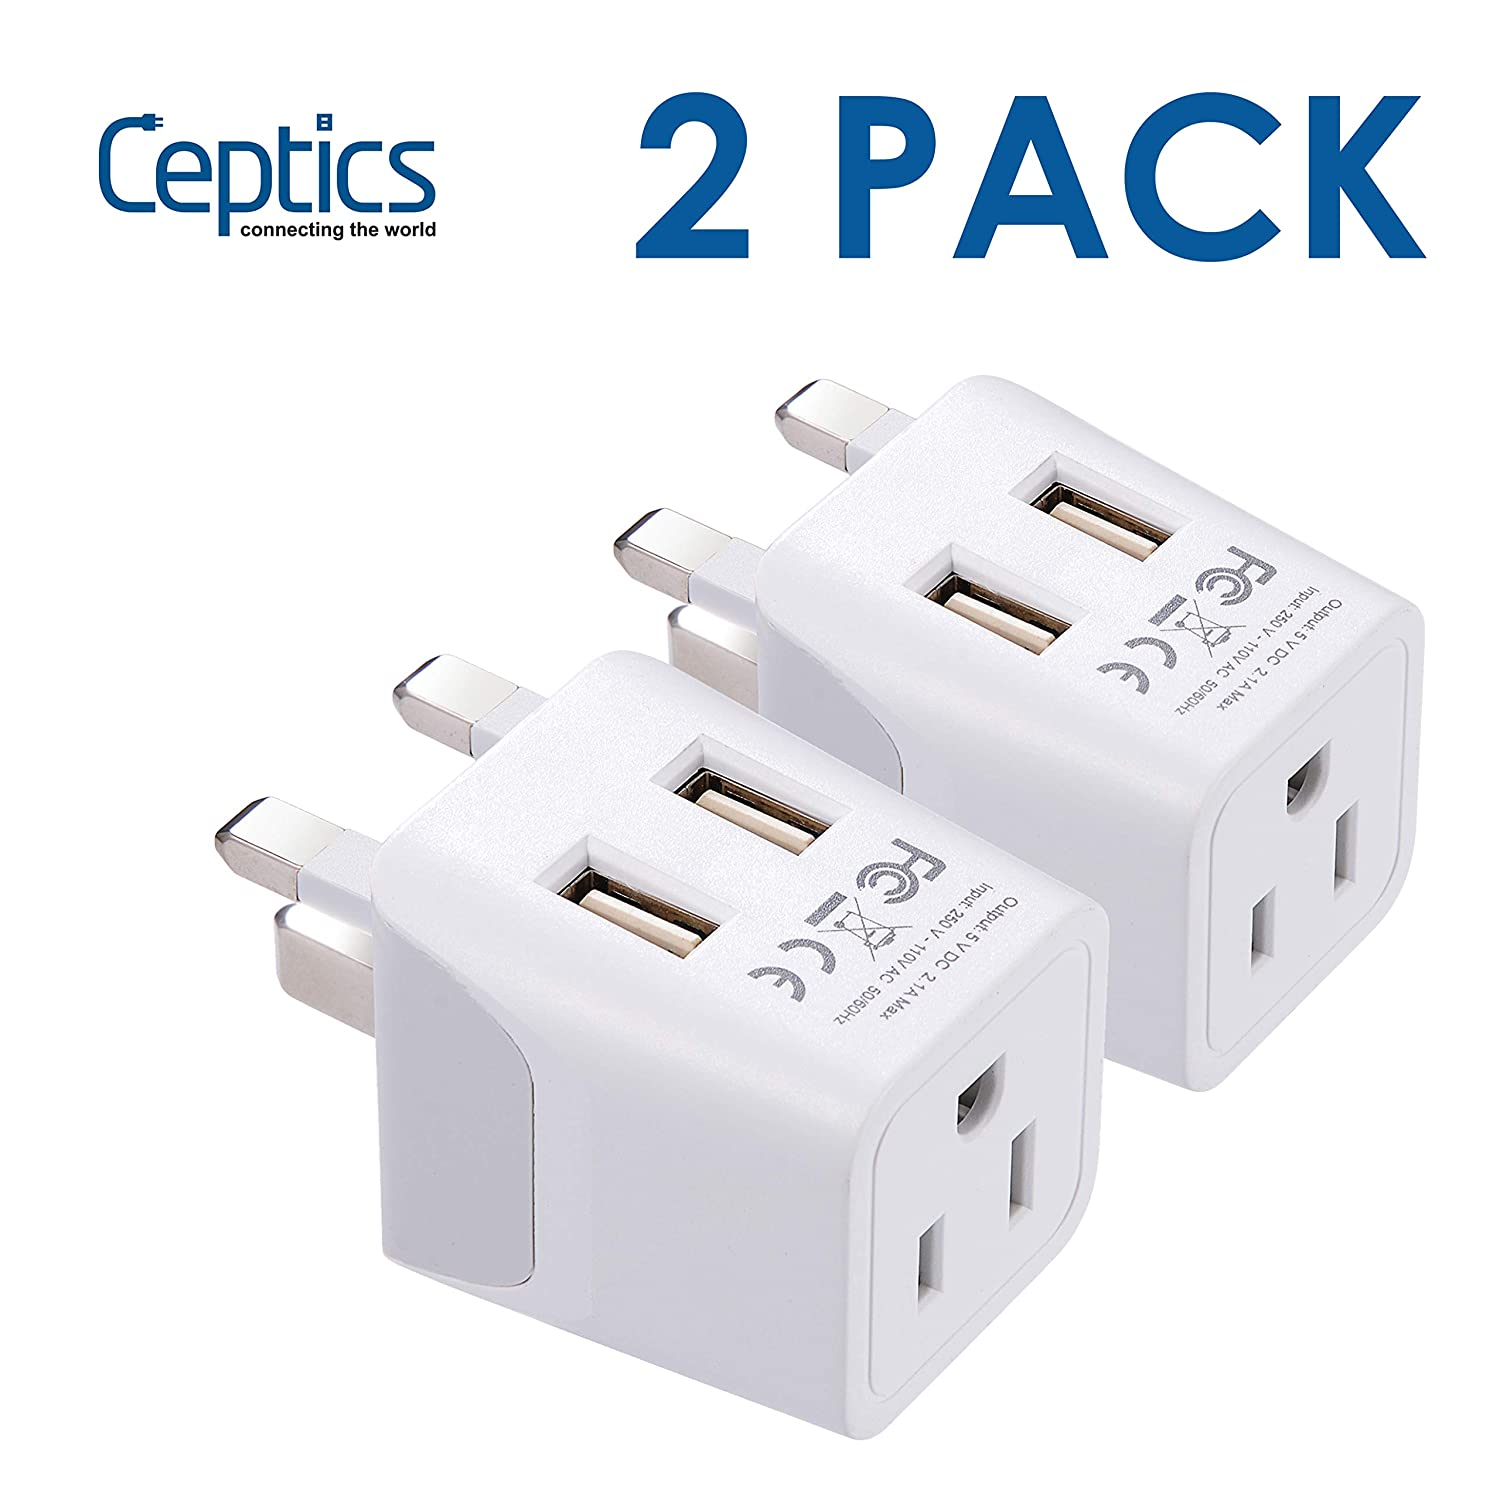 UK, Hong Kong, CTU-7-2PK Ireland Travel Adapter Plug by Ceptics with Dual USB - Type G - London - USA Input - Light Weight - Perfect for Cell Phones, Chargers, Cameras and More - 2 Pack